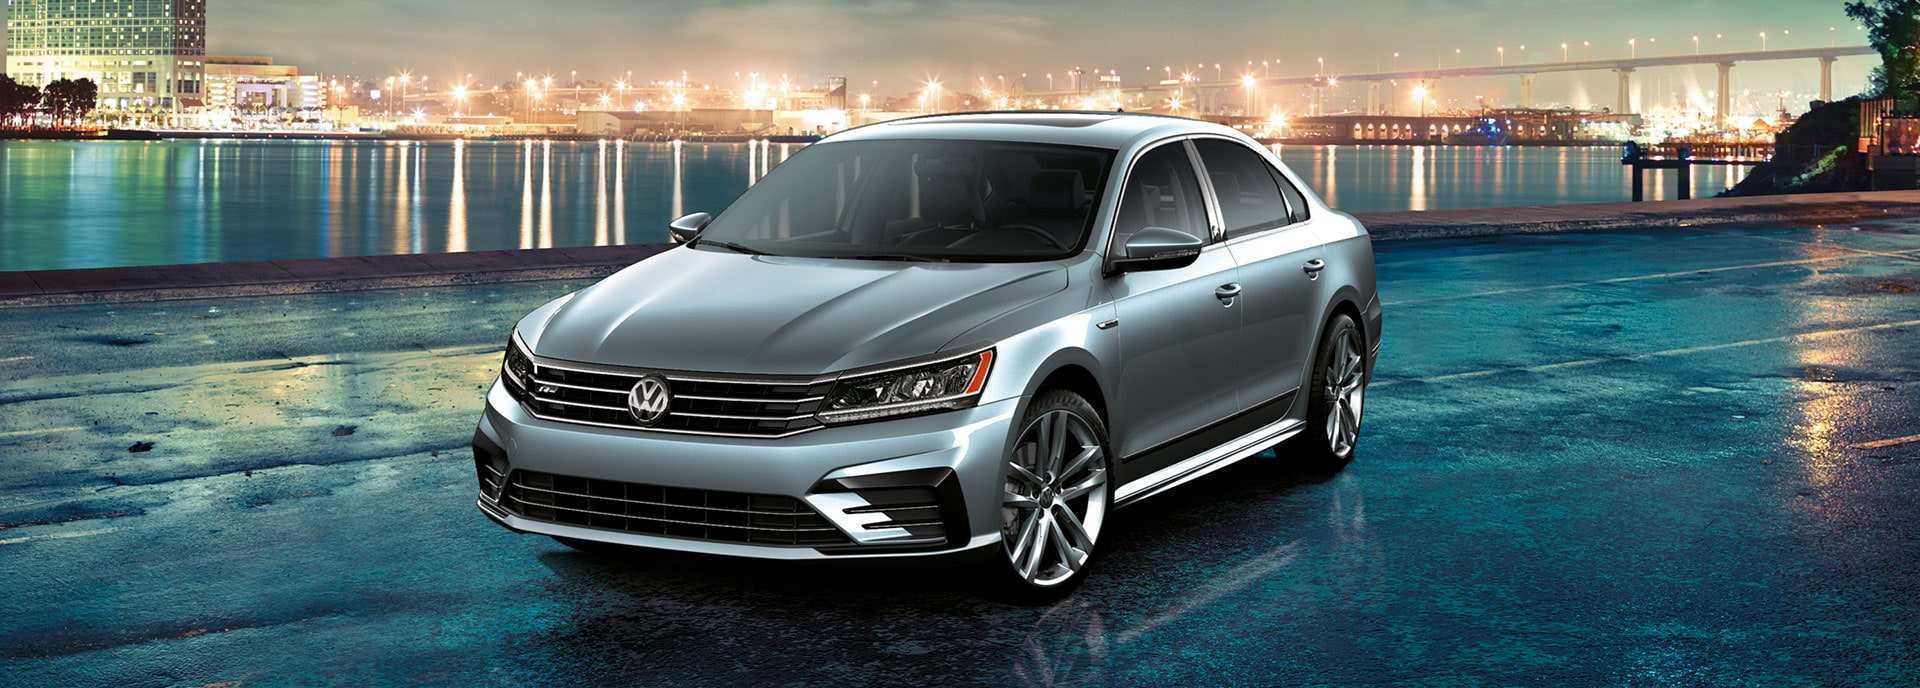 58 Best 2019 Volkswagen Passat Reviews